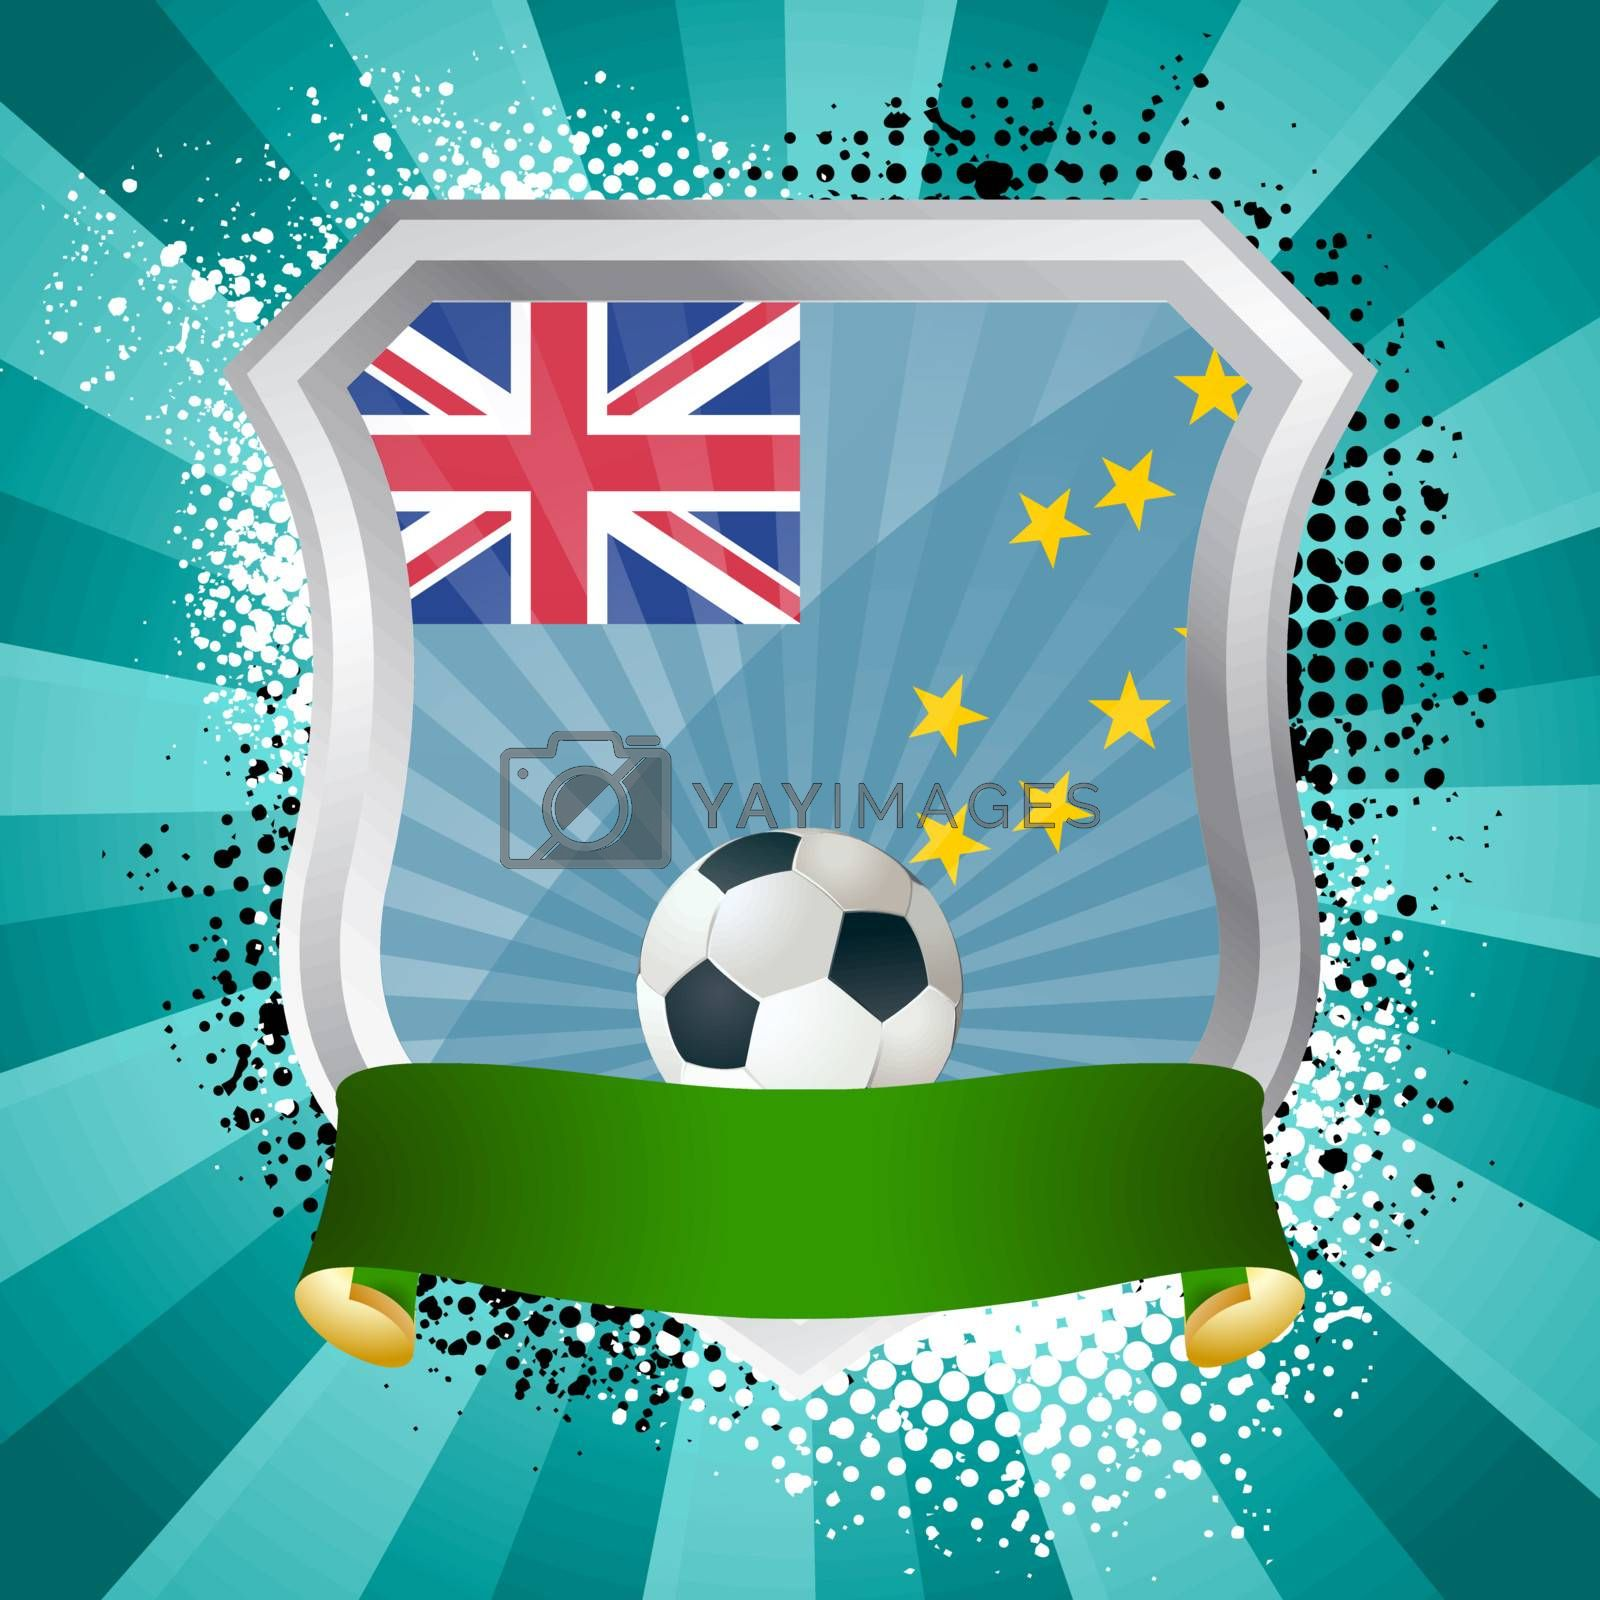 EPS 10. Shiny metal shield on bright background with flag of Tuvalu